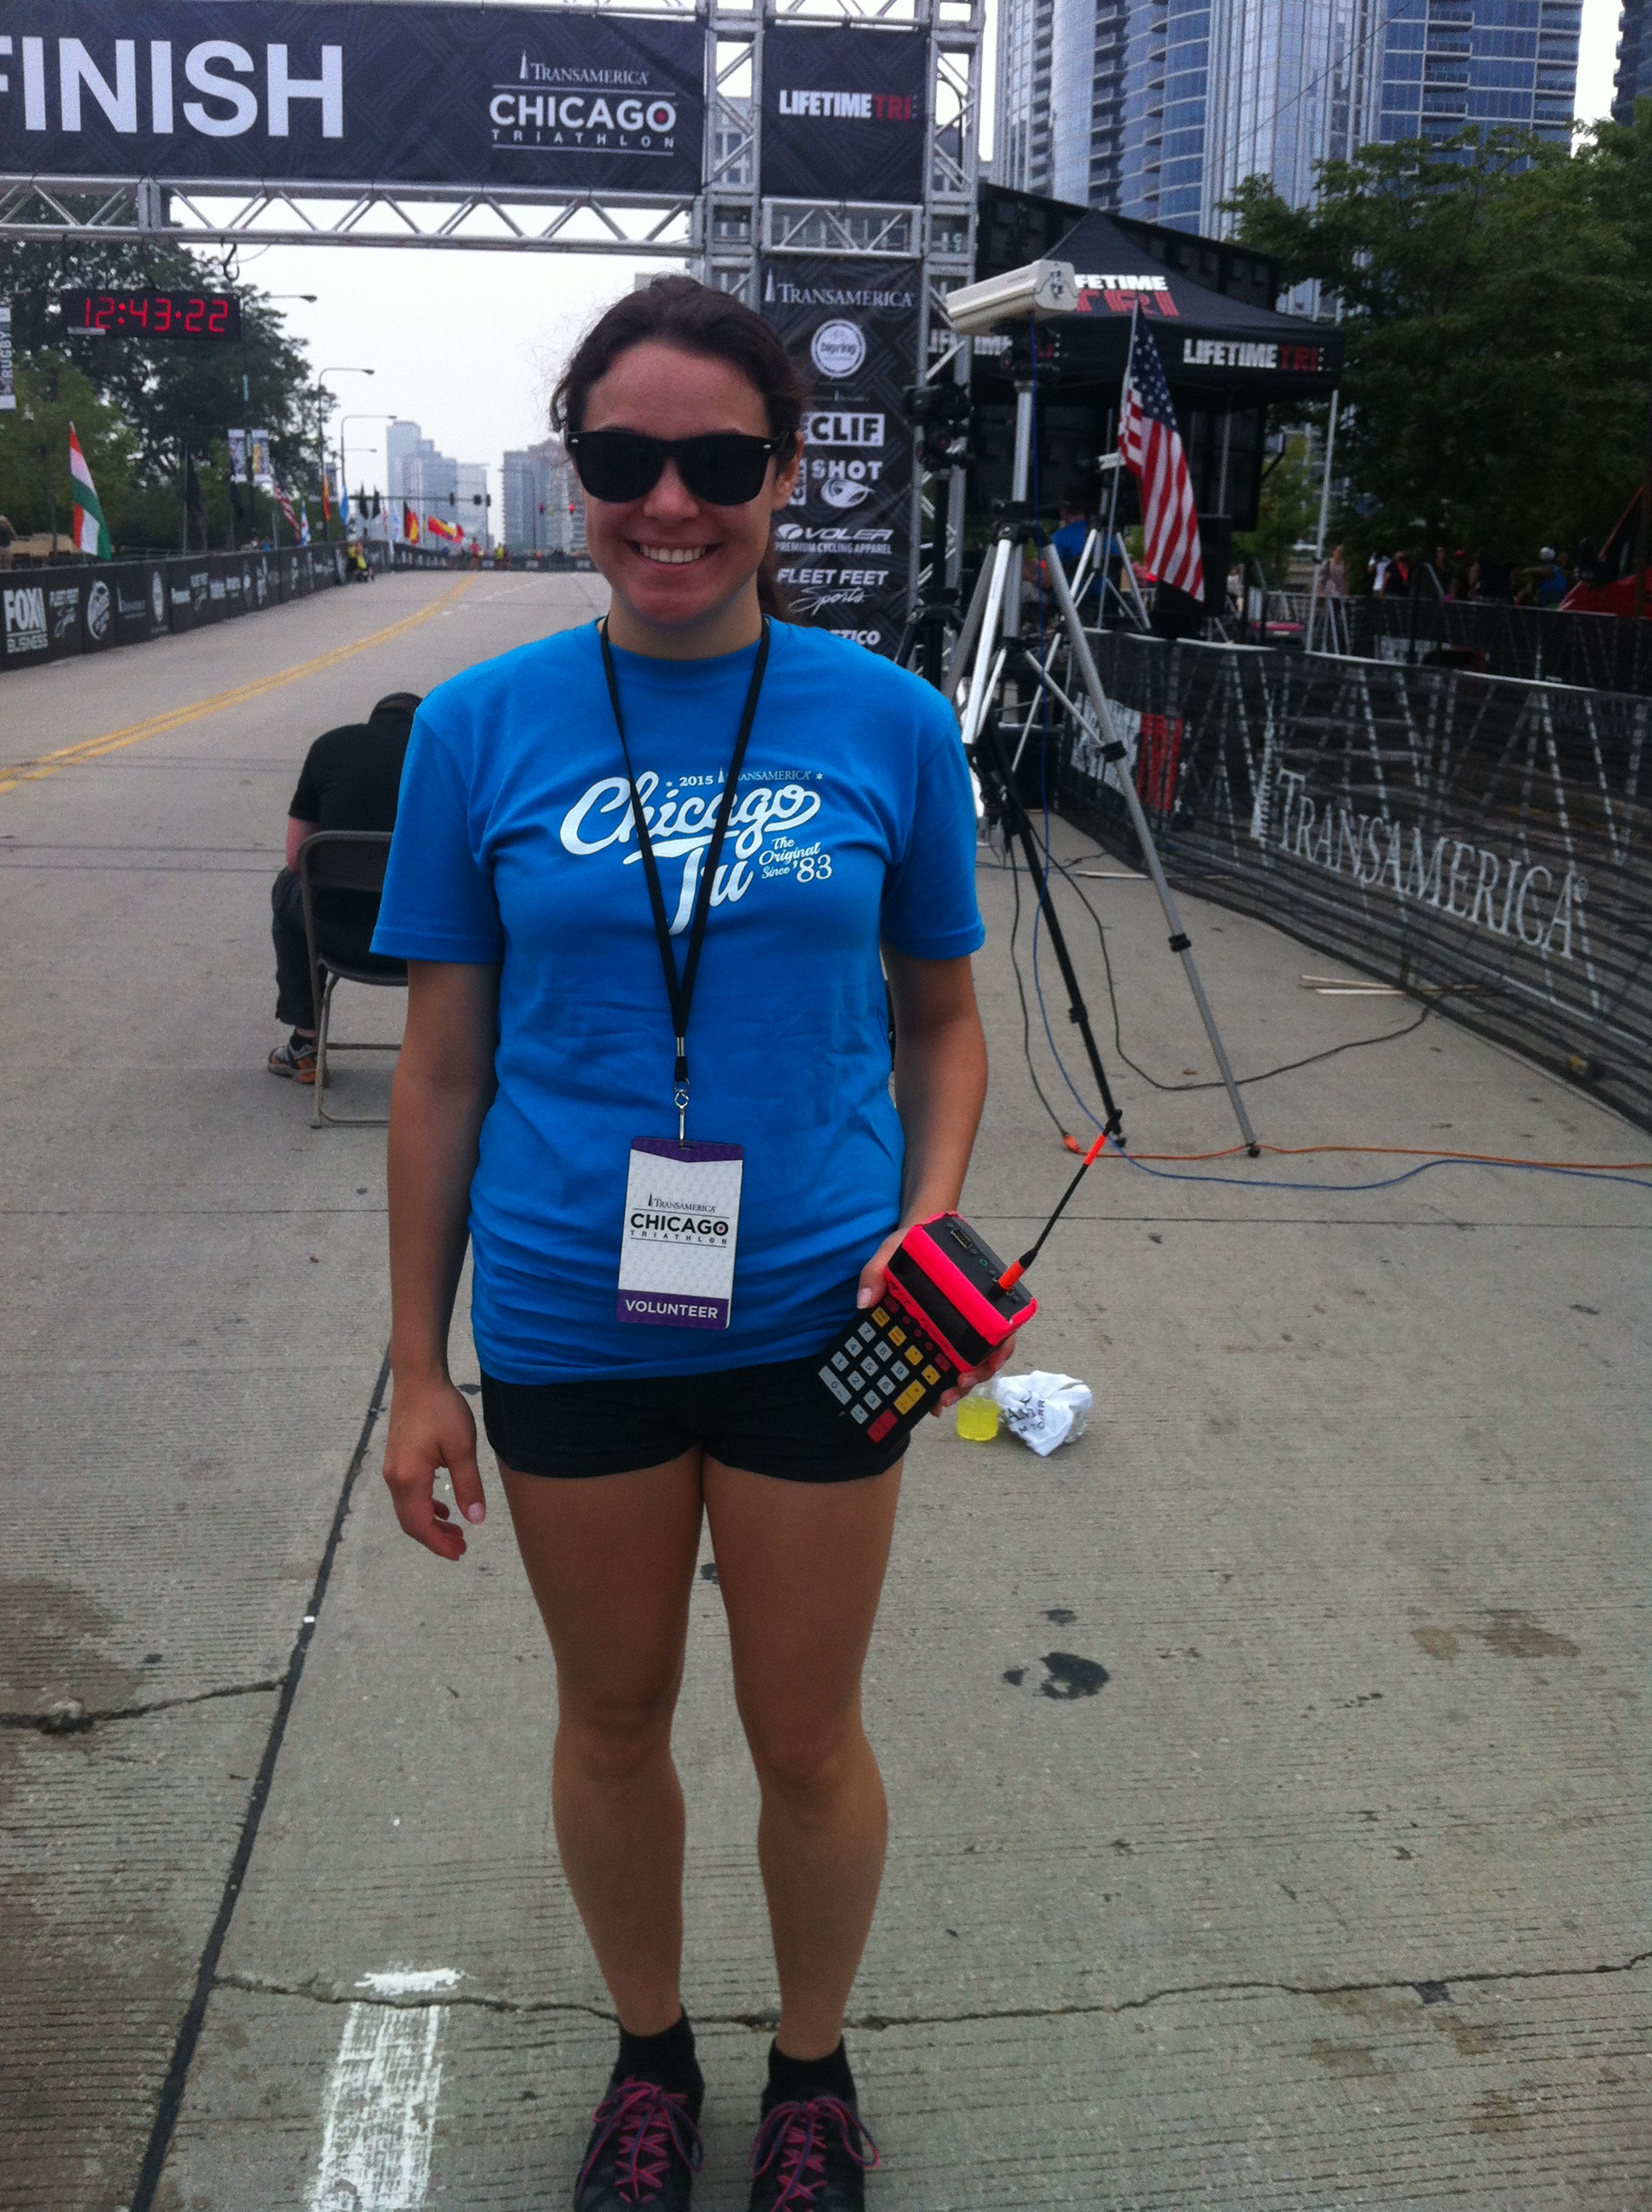 Camille volunteering for the Leukemia and Lymphoma Society at the Chicago Triathalon